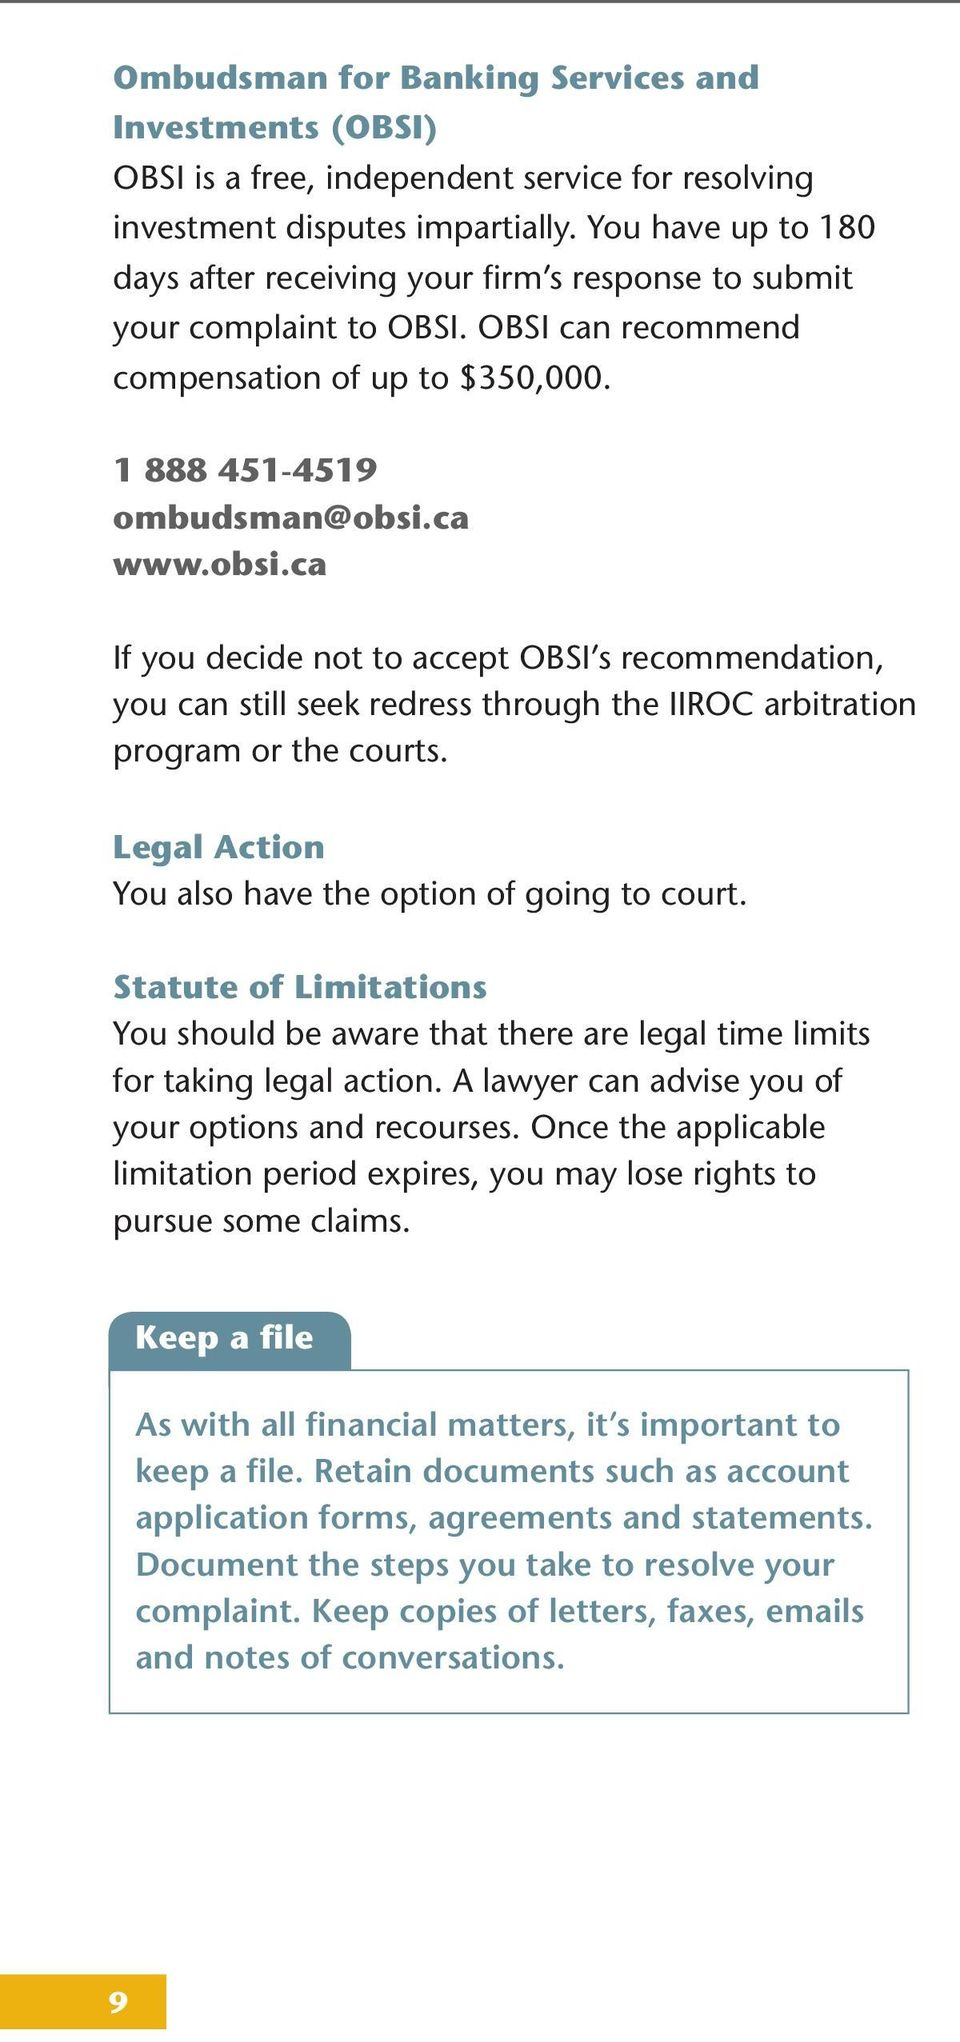 ca www.obsi.ca If you decide not to accept OBSI s recommendation, you can still seek redress through the IIROC arbitration program or the courts.